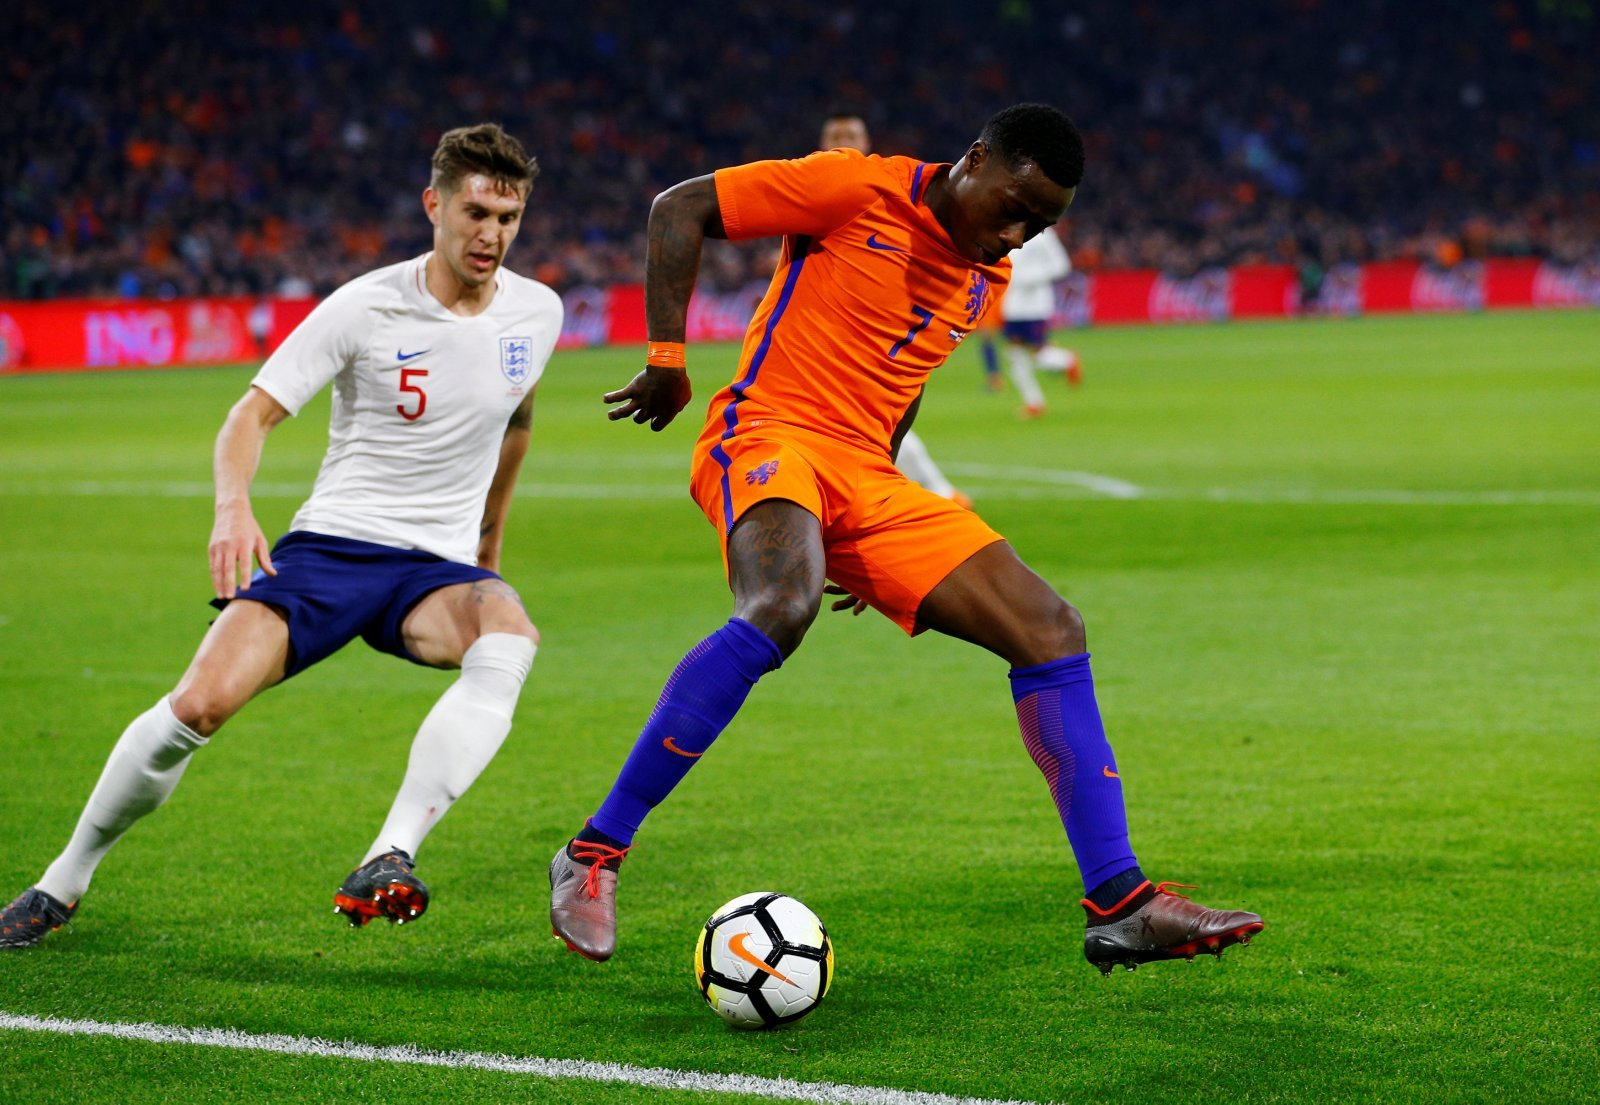 Quincy Promes would give Arsenal a wonderful new attacking edge